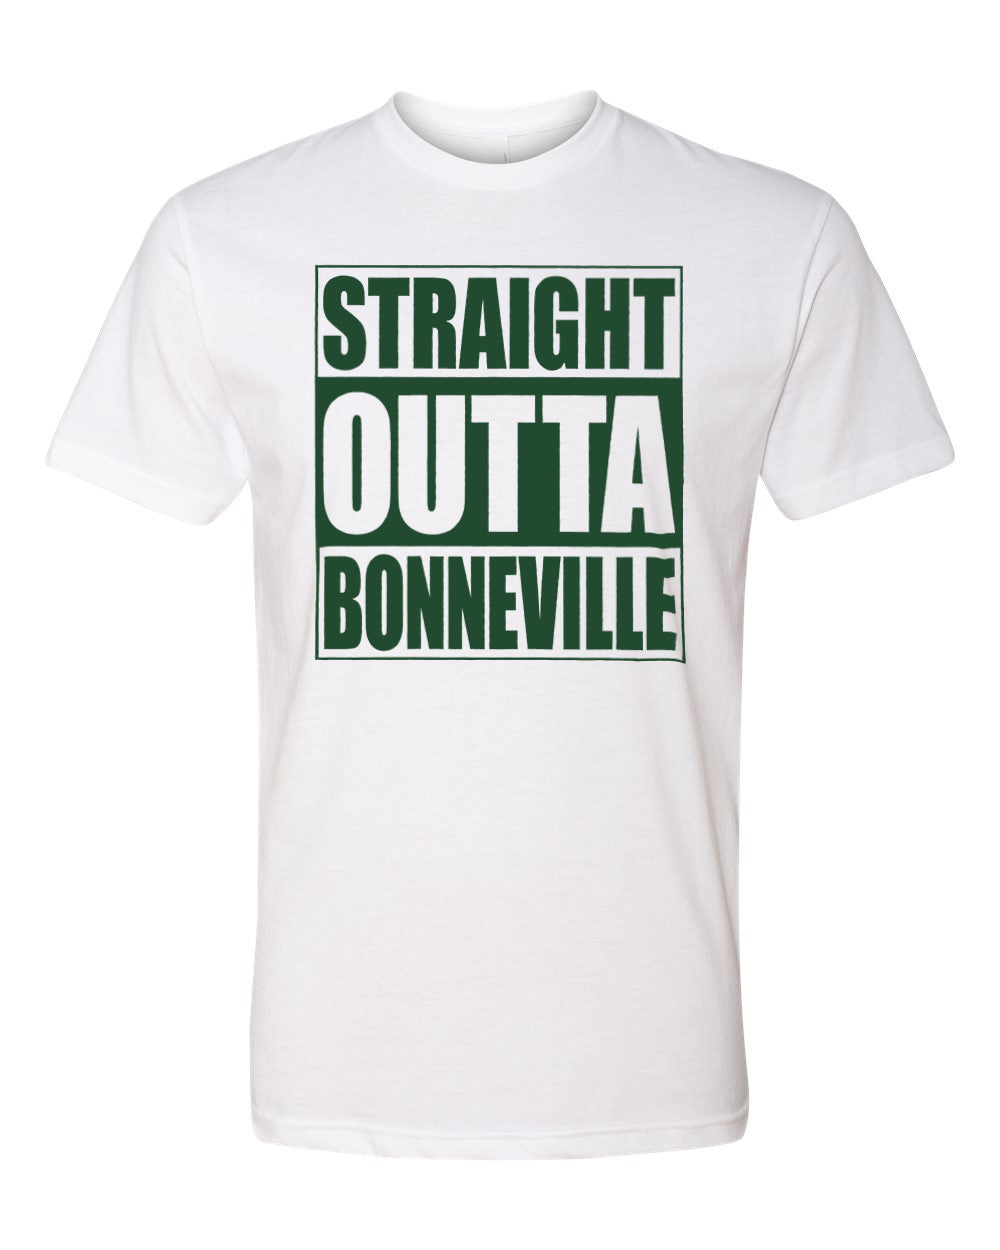 BONNEVILLE HS – Next Level Fitted Crew Tee – Straight Outta Bonneville (Dark Green/White)